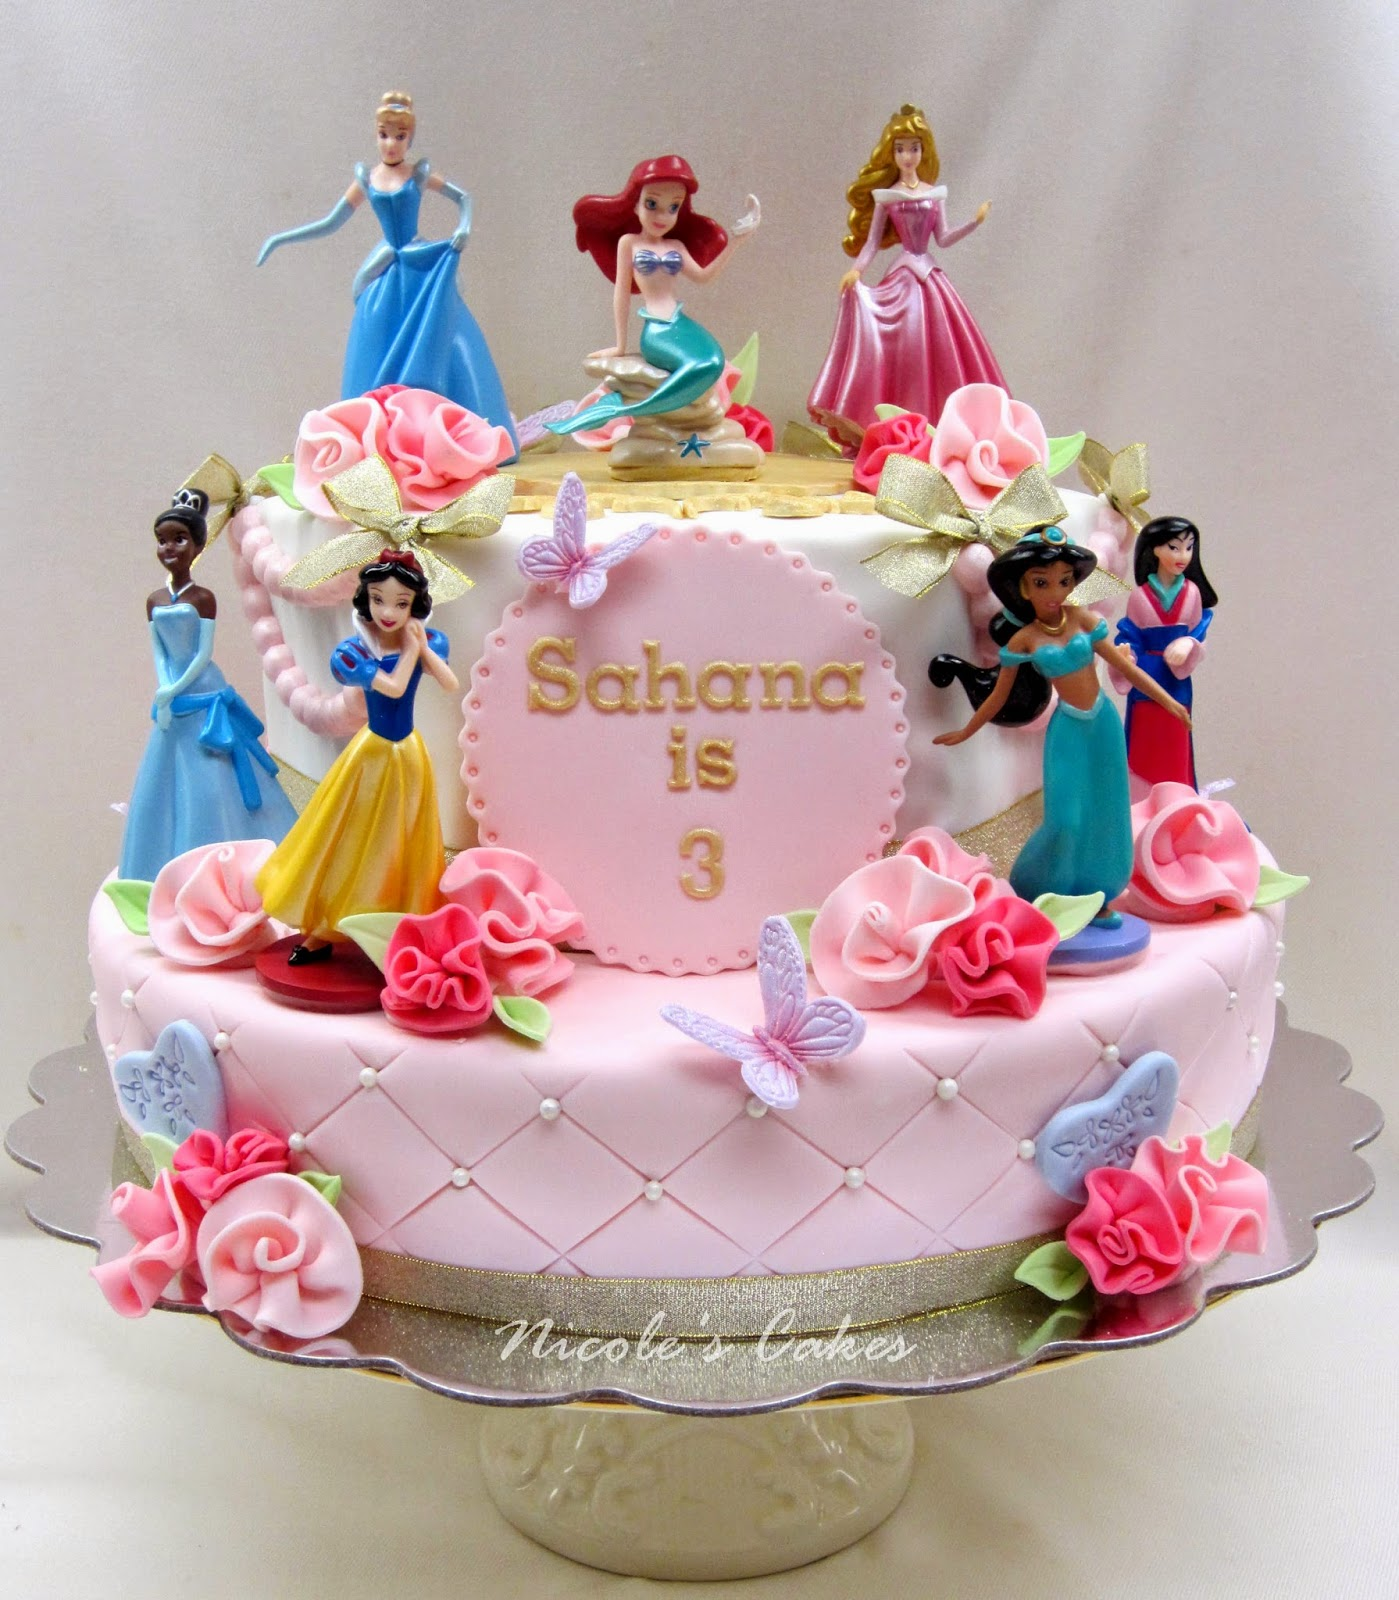 Princess Cake Design : Confections, Cakes & Creations!: Gorgeous Pink Princess Cake!